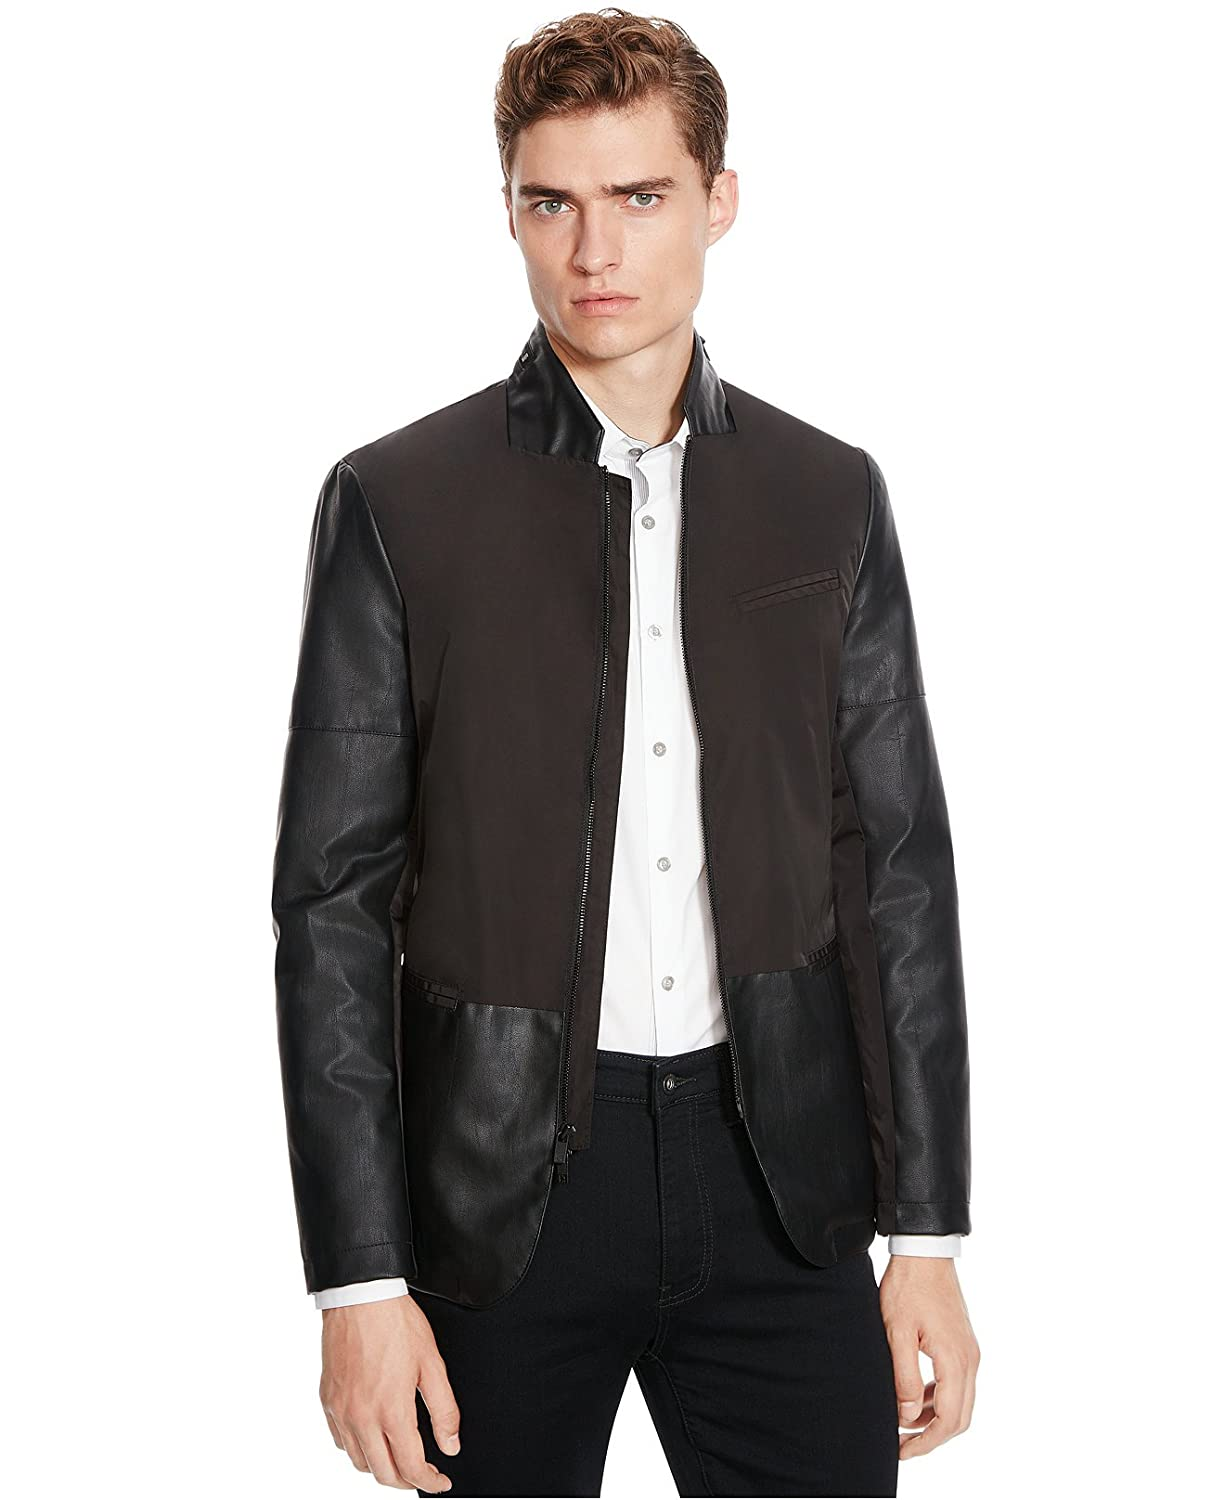 afea6ee50 Kenneth Cole Reaction Mens Two-Tone Faux Leather Basic Jacket Black ...